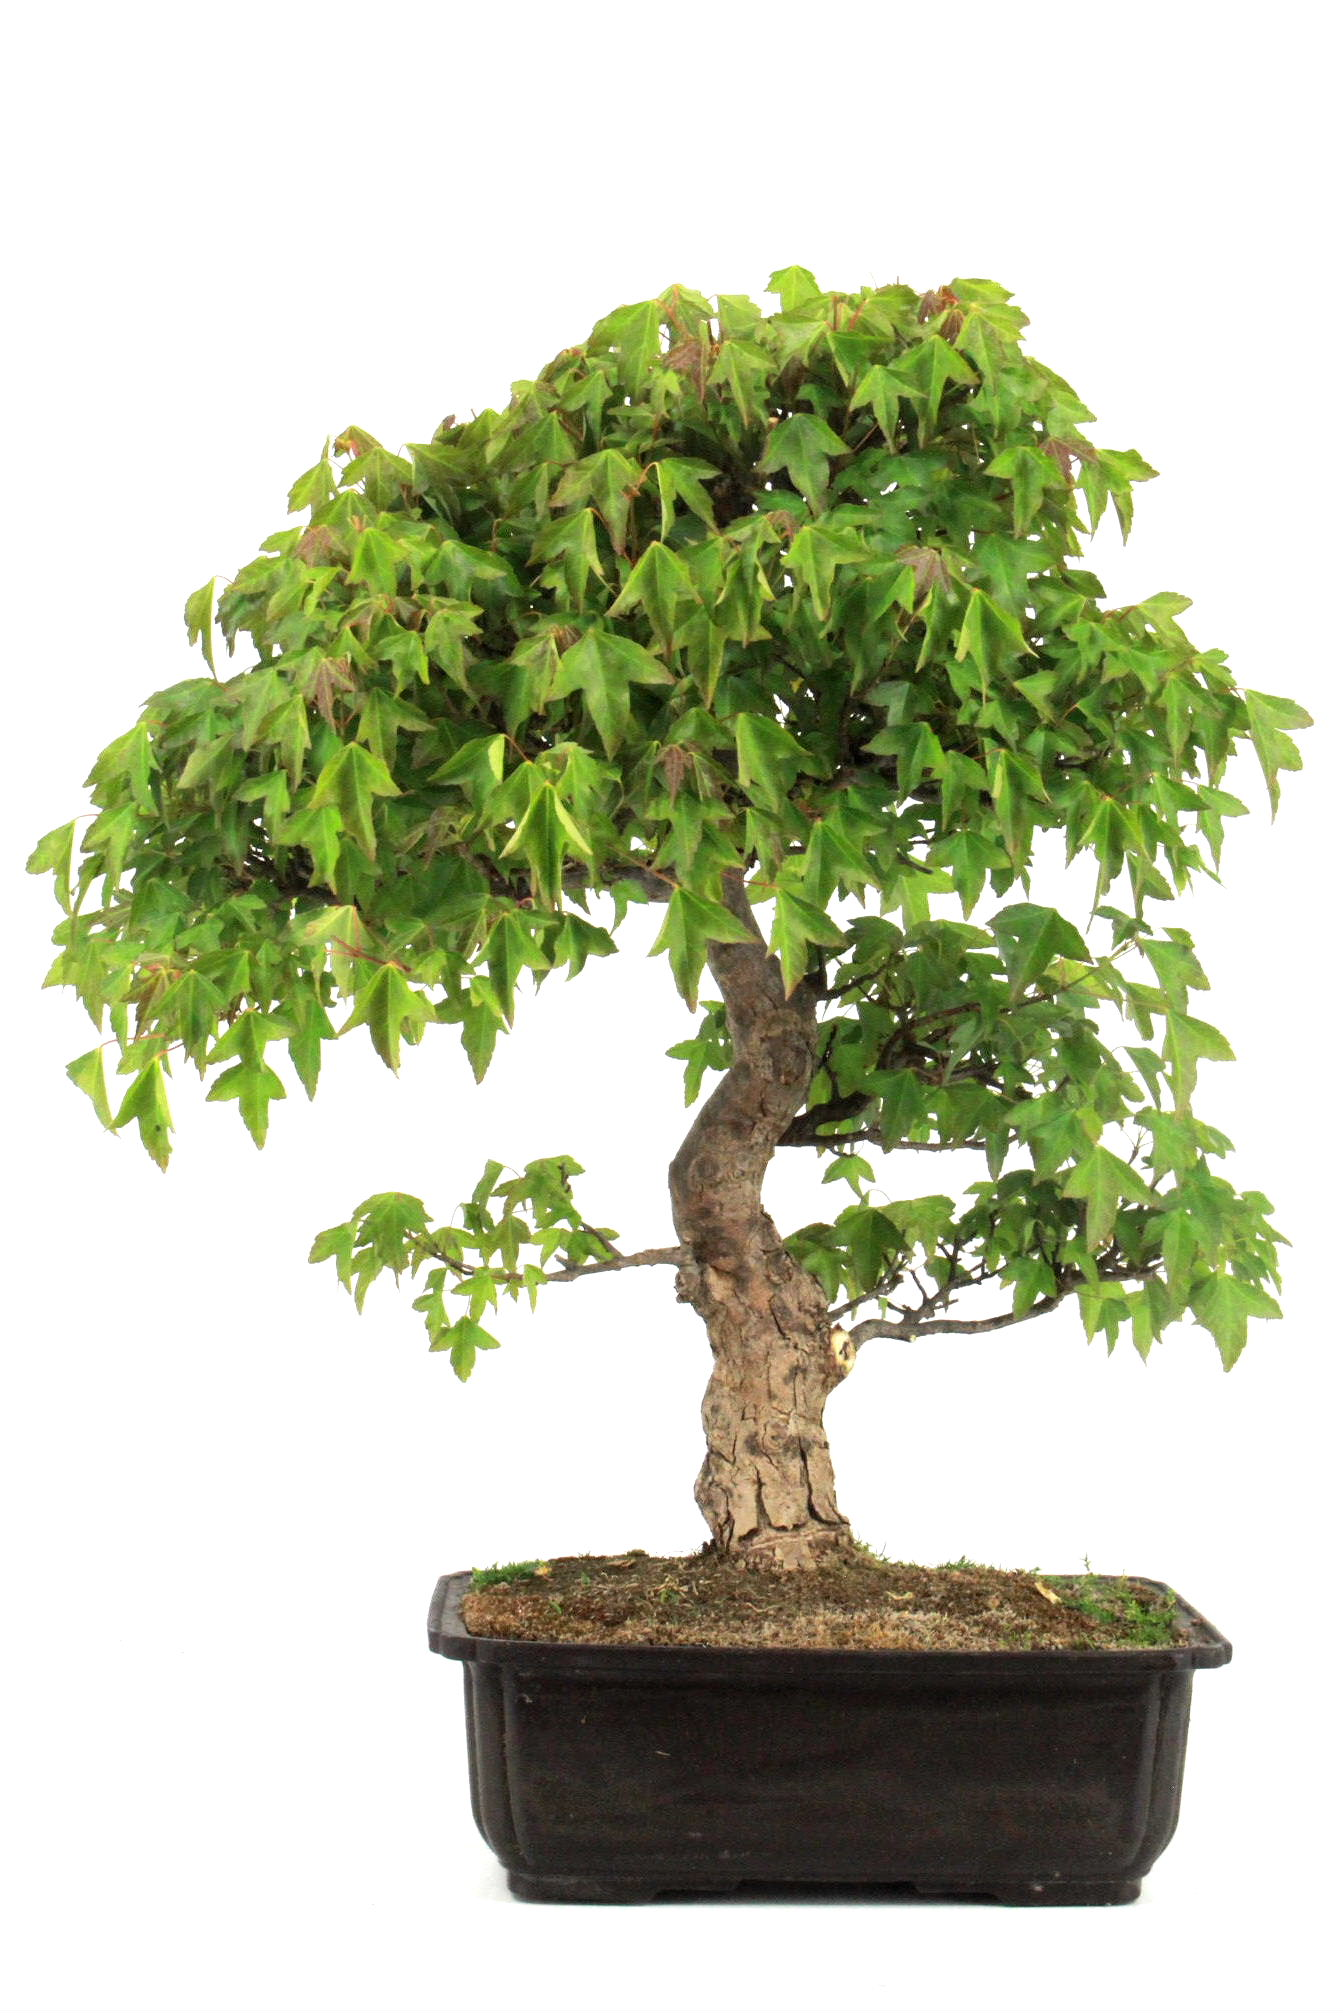 Bonsai dreispitz ahorn 54 cm 2625 bei oyaki bonsai kaufen for Bonsai onlineshop